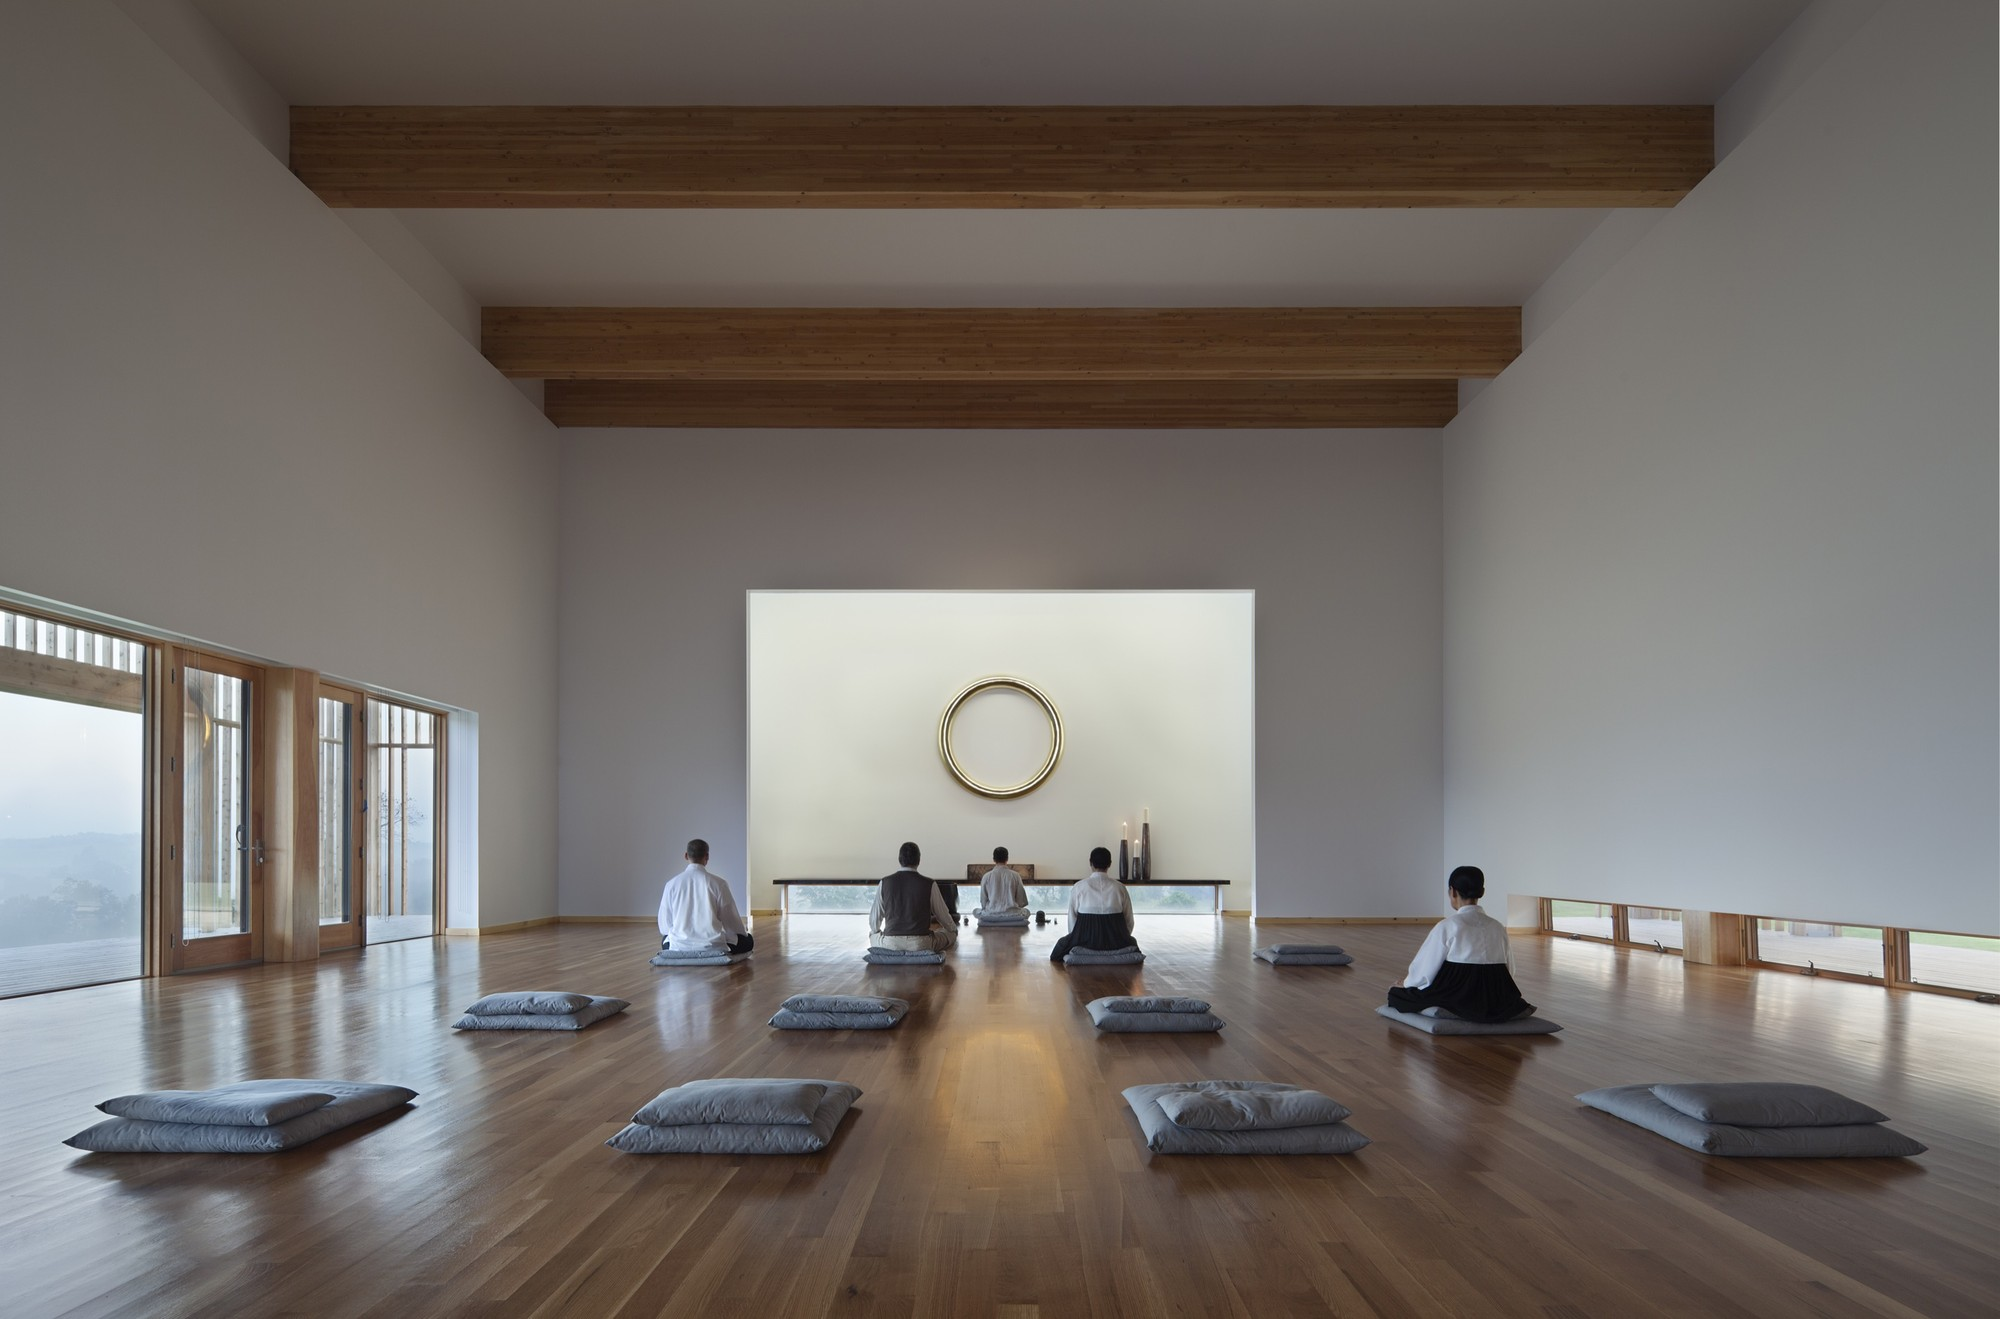 Gallery of won dharma hanrahanmeyers architects 3 for Zen meditation room